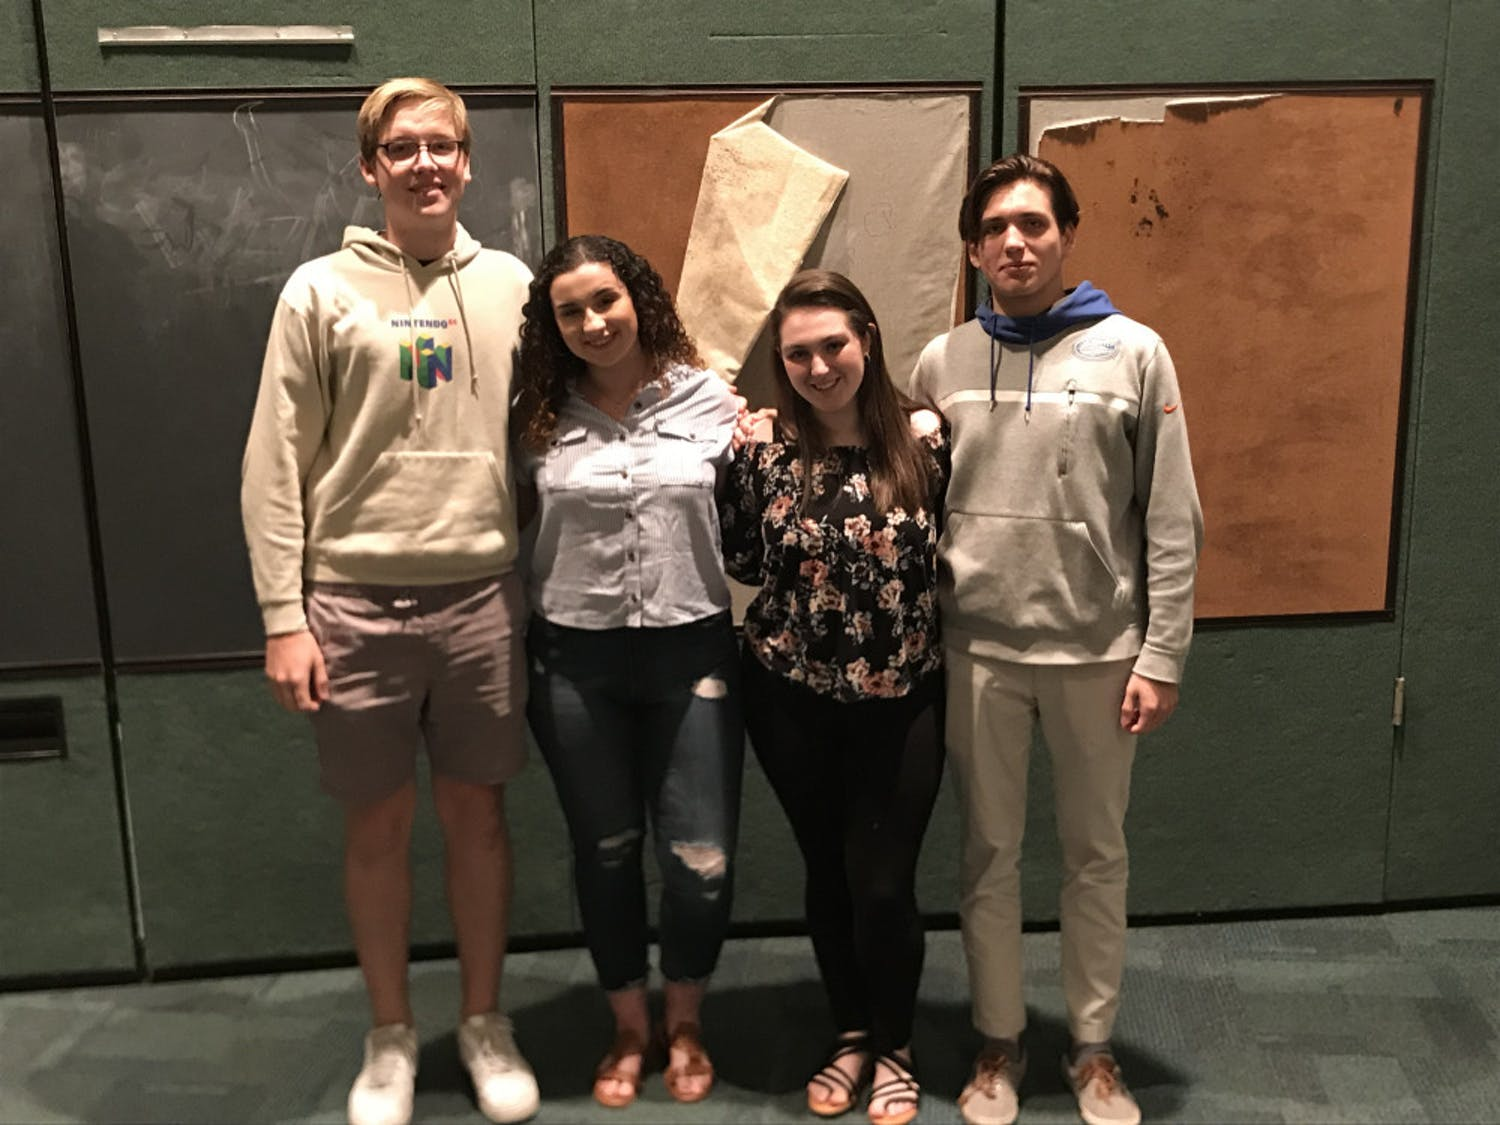 Eastside High School students James Donnelly (left), Carly Rubin, Camille Eyman and Graham Louis (right) will be performing and competing as the district representative for district 12.